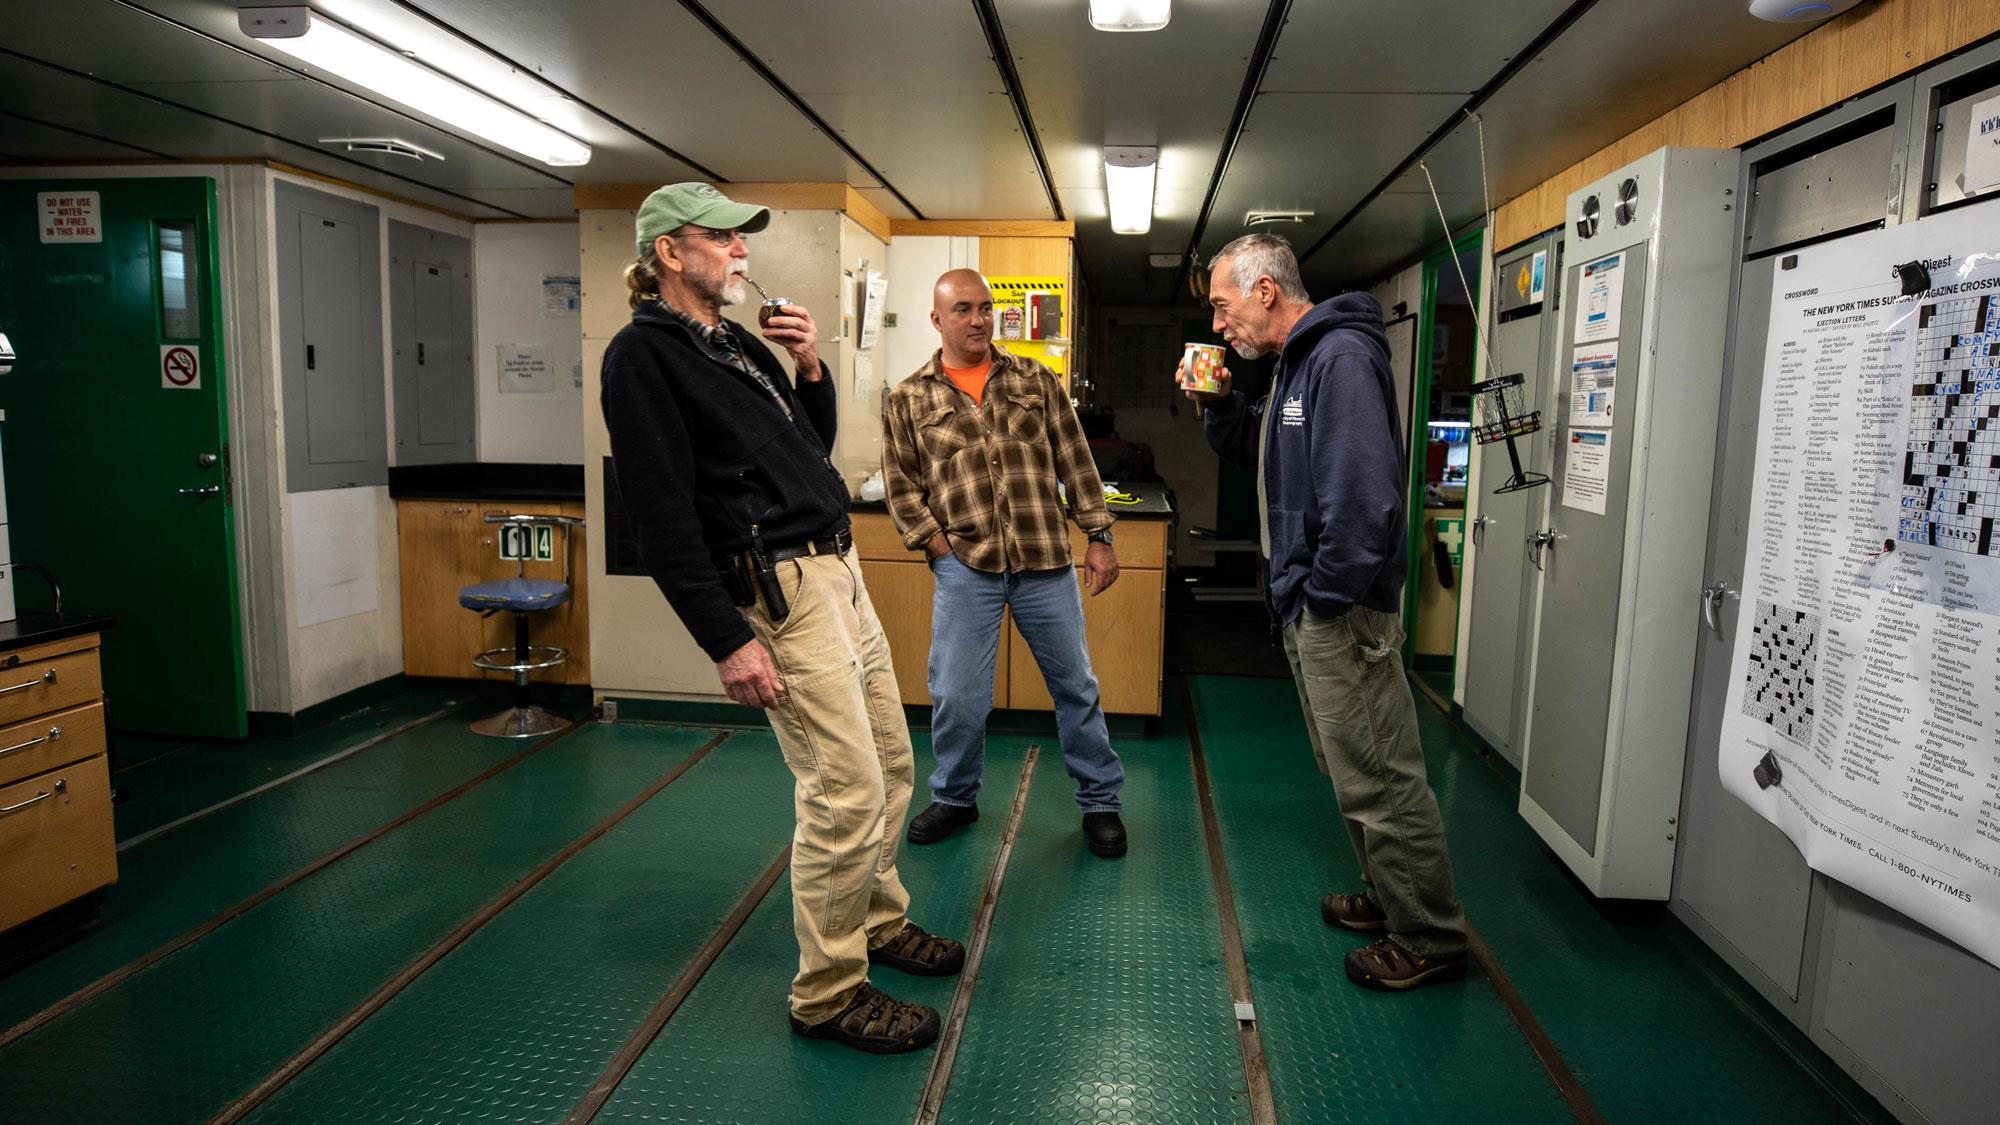 Three crew members are shown in a room with a green floor all leaning in order to stay balanced.